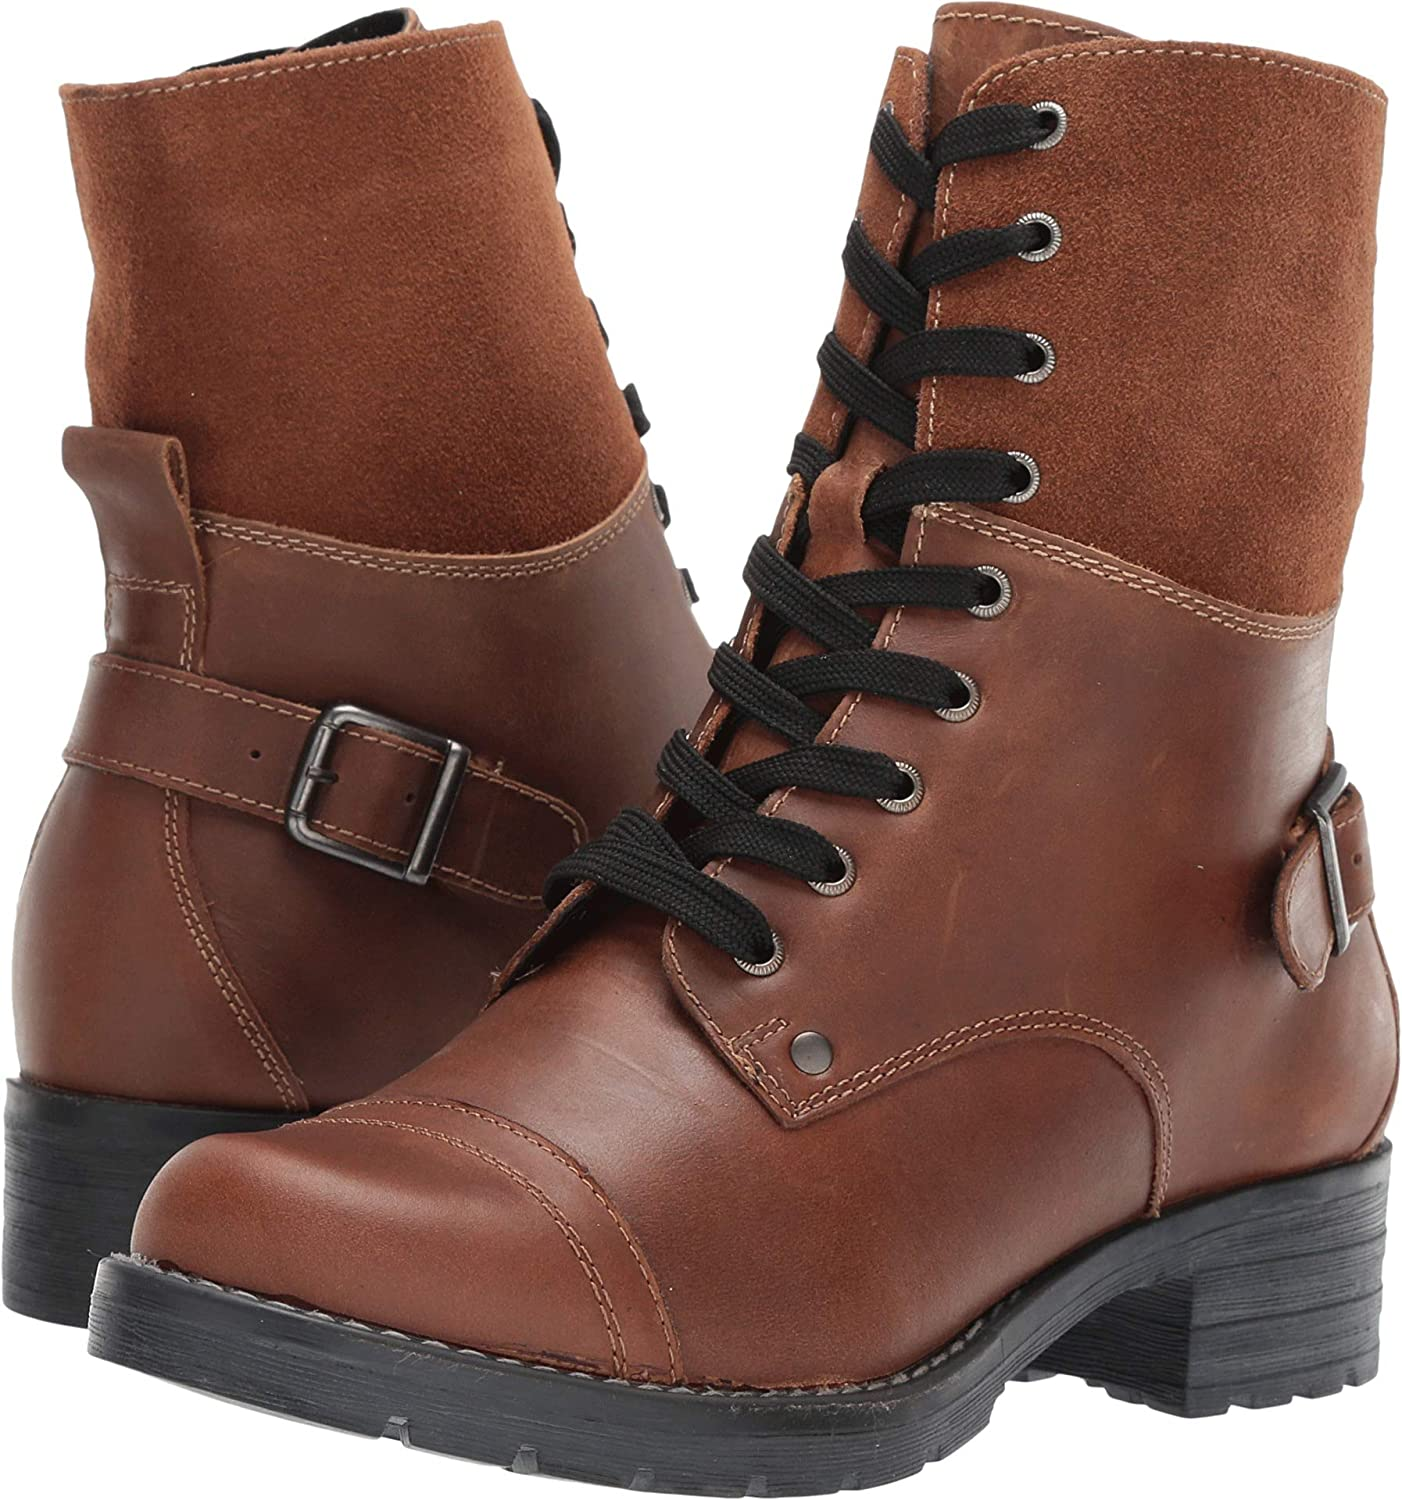 Tundra Boots Womens Mid Dee Finally resale start price